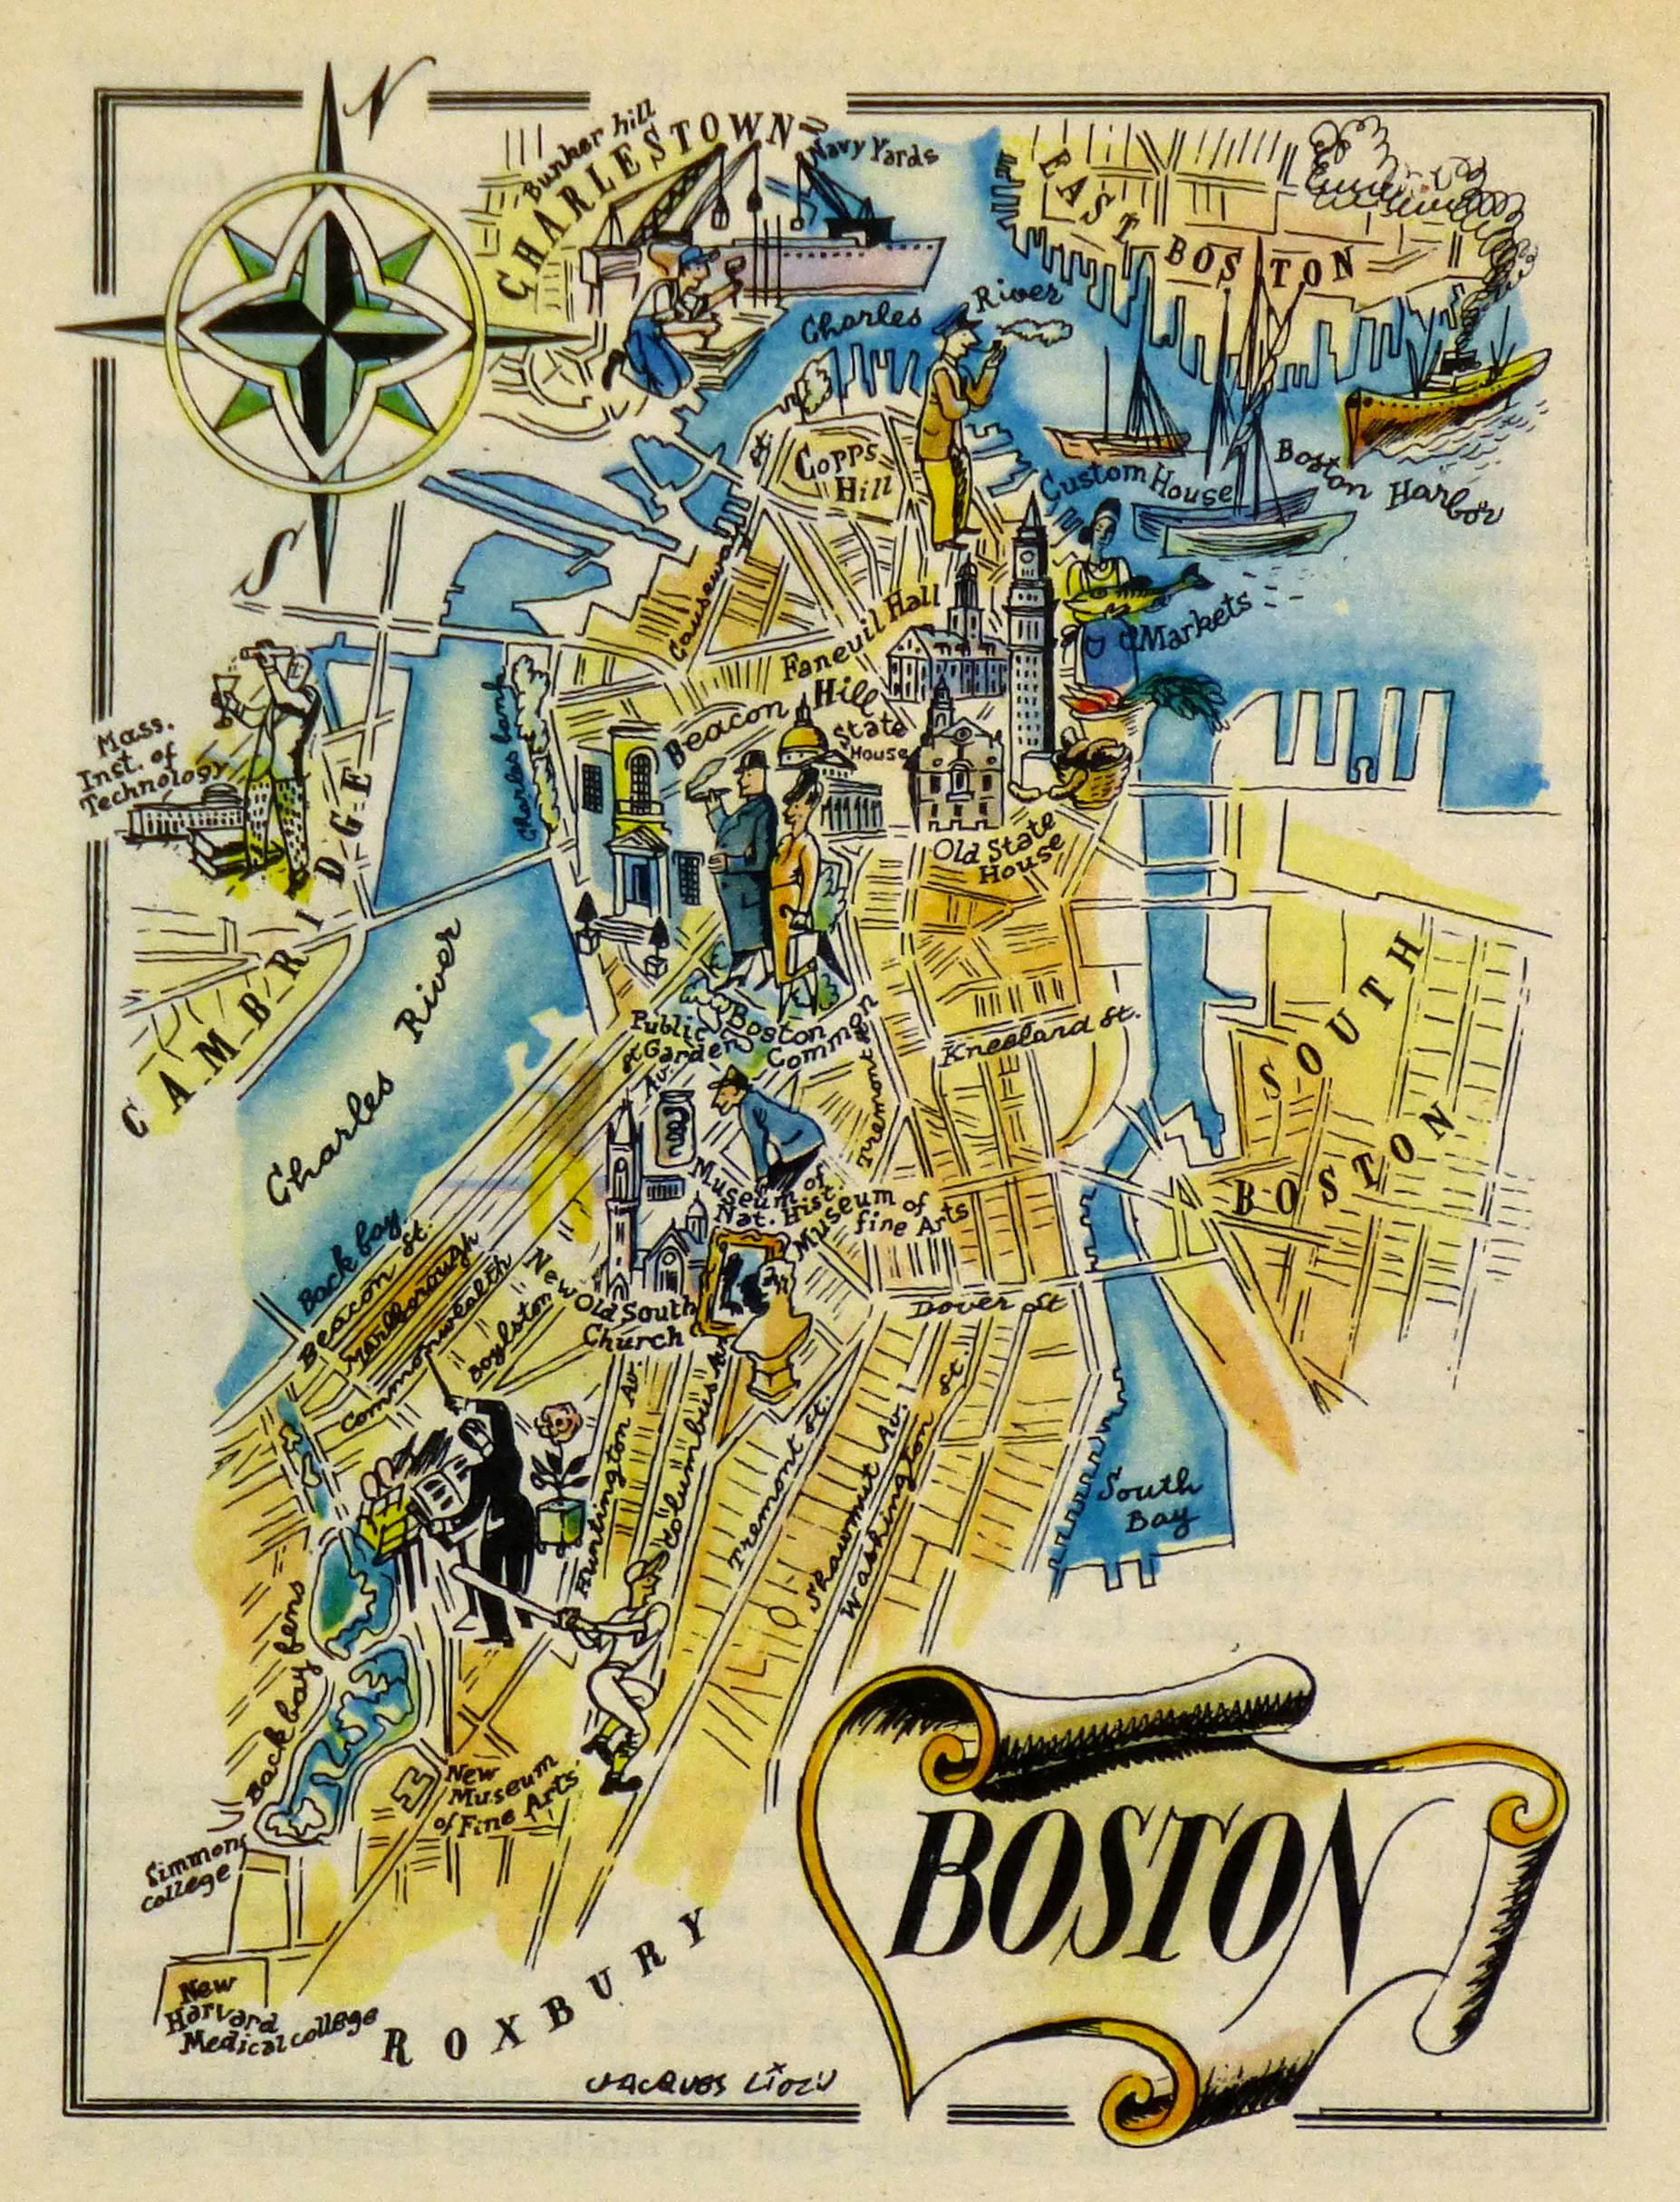 Boston Pictorial Map, 1946